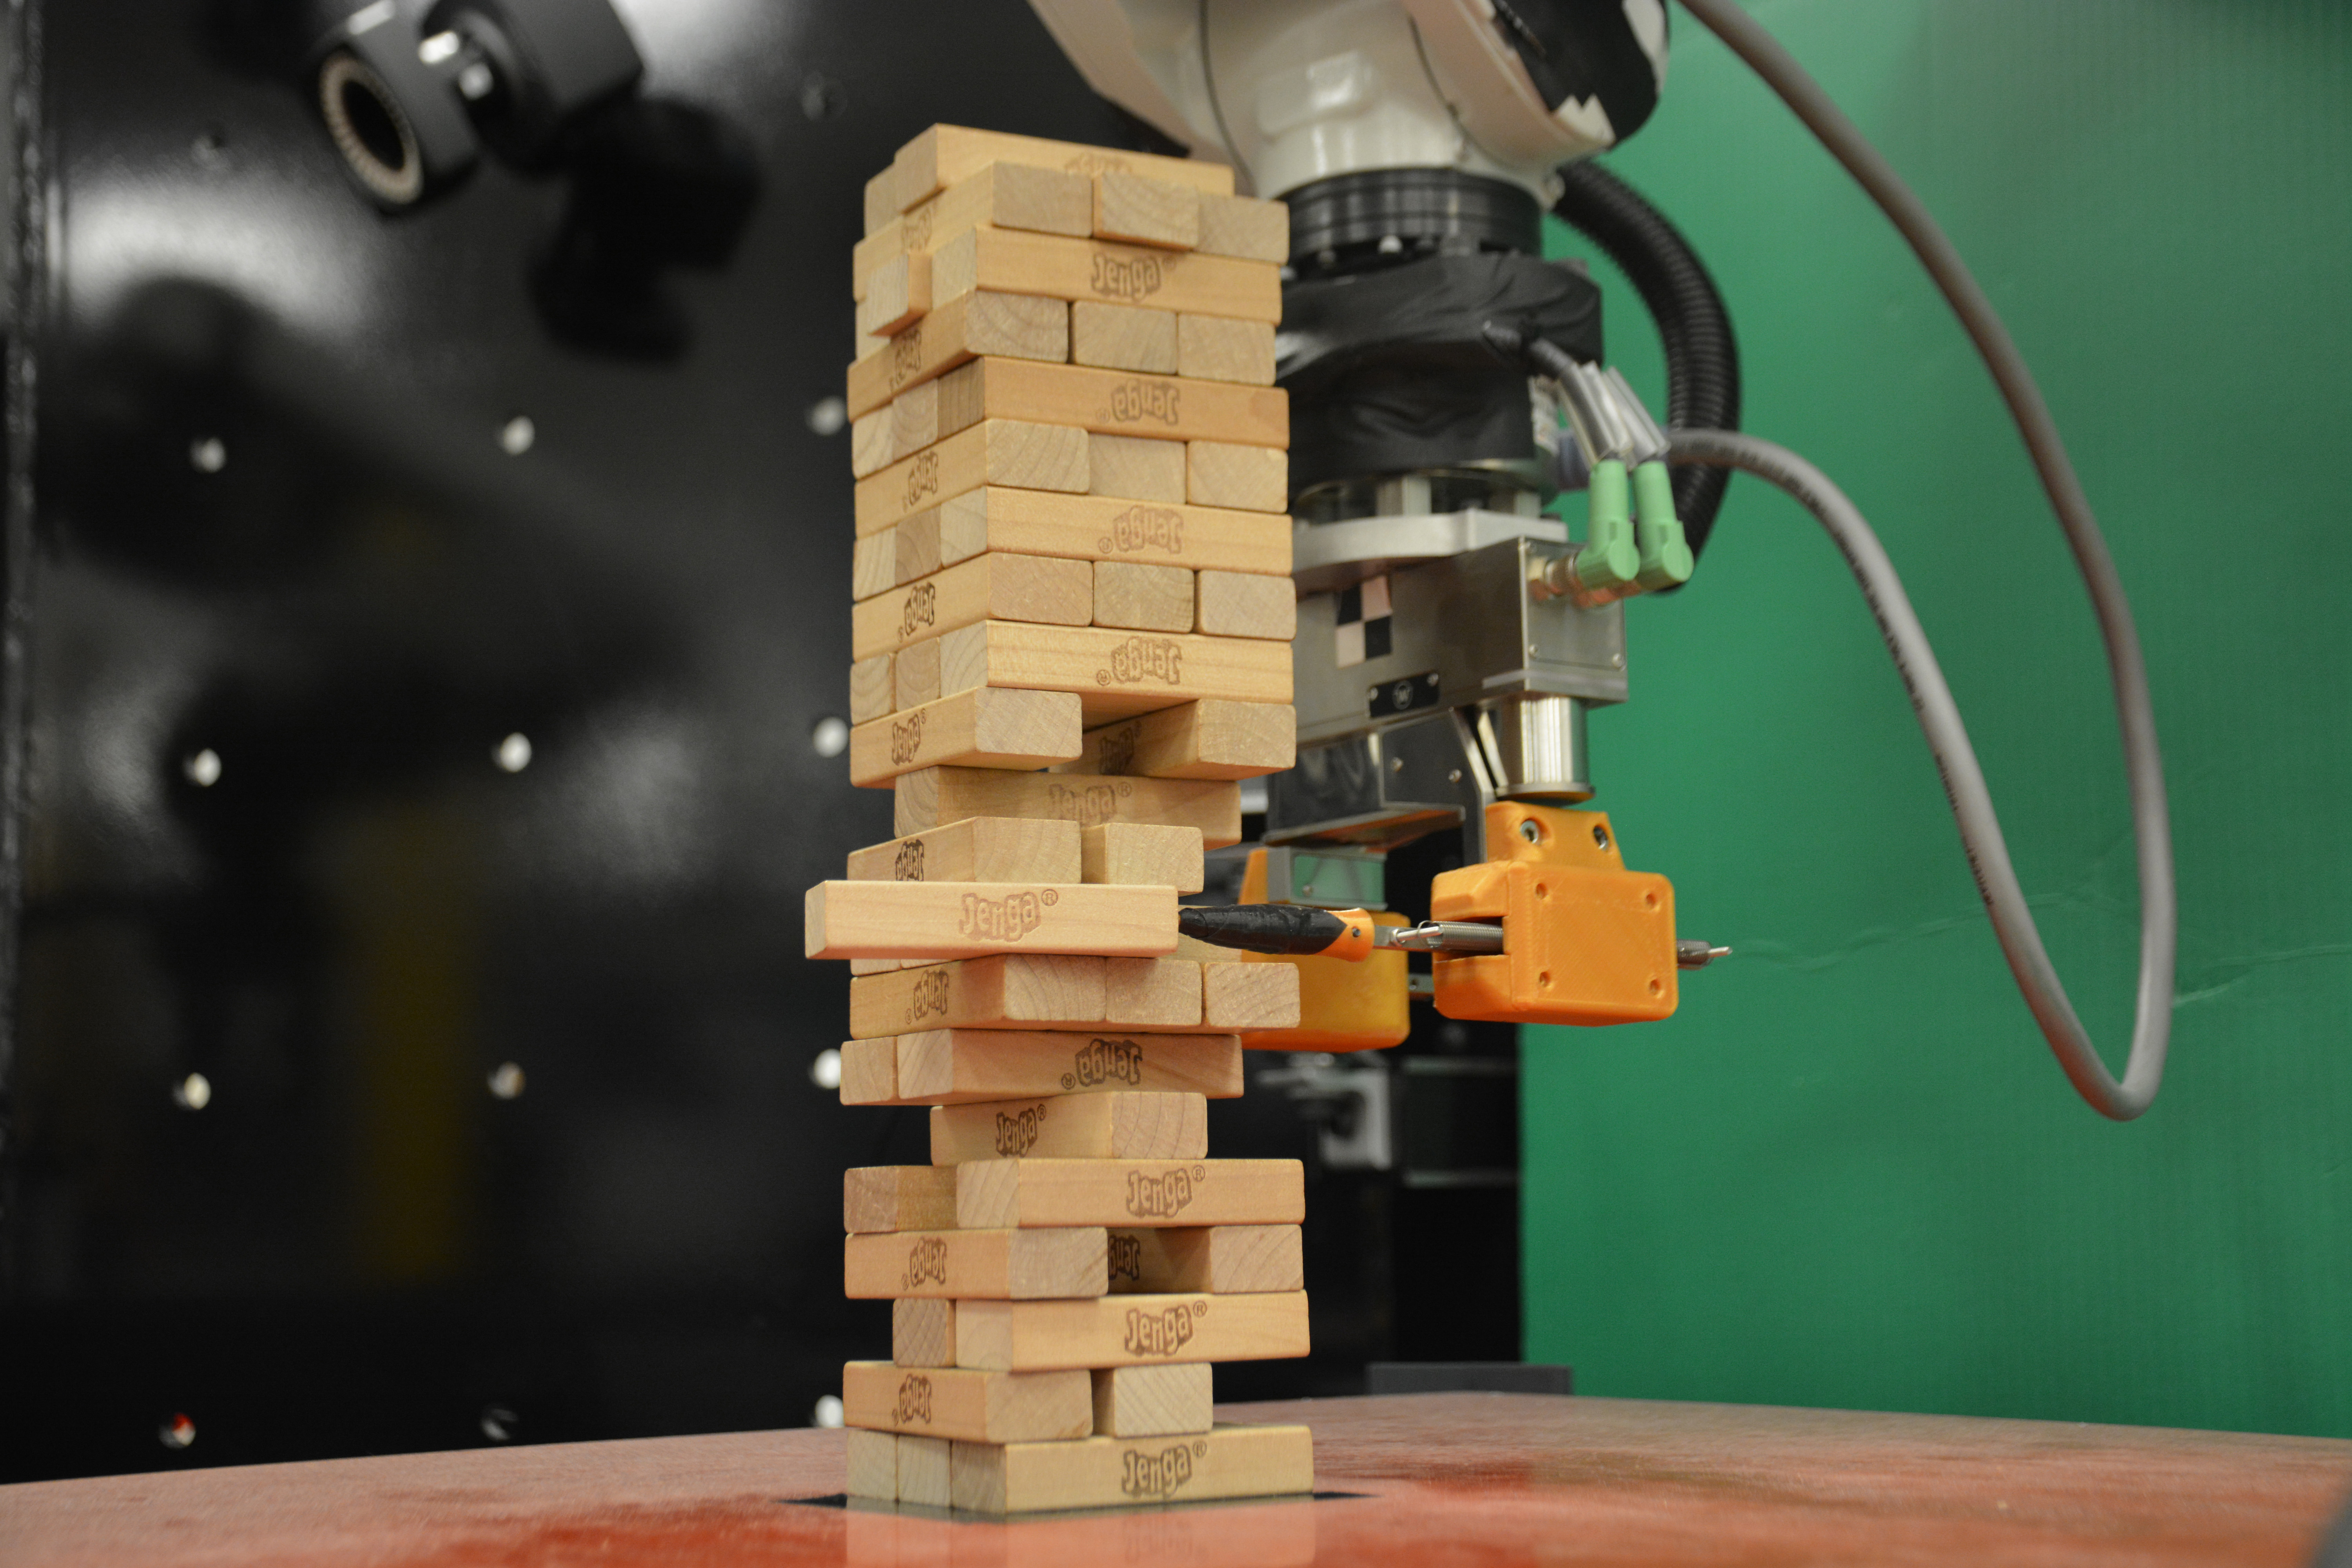 A robot designed by Carnegie Mellon alumnus Alberto Rodriguez and his team slowly pokes a wooden Jenga block out of a tower. Unlike traditional machine learning schemes, this robot takes careful visual and tactile measurements to model the behavior of Jenga blocks continuously, which has broad applications in manufacturing.